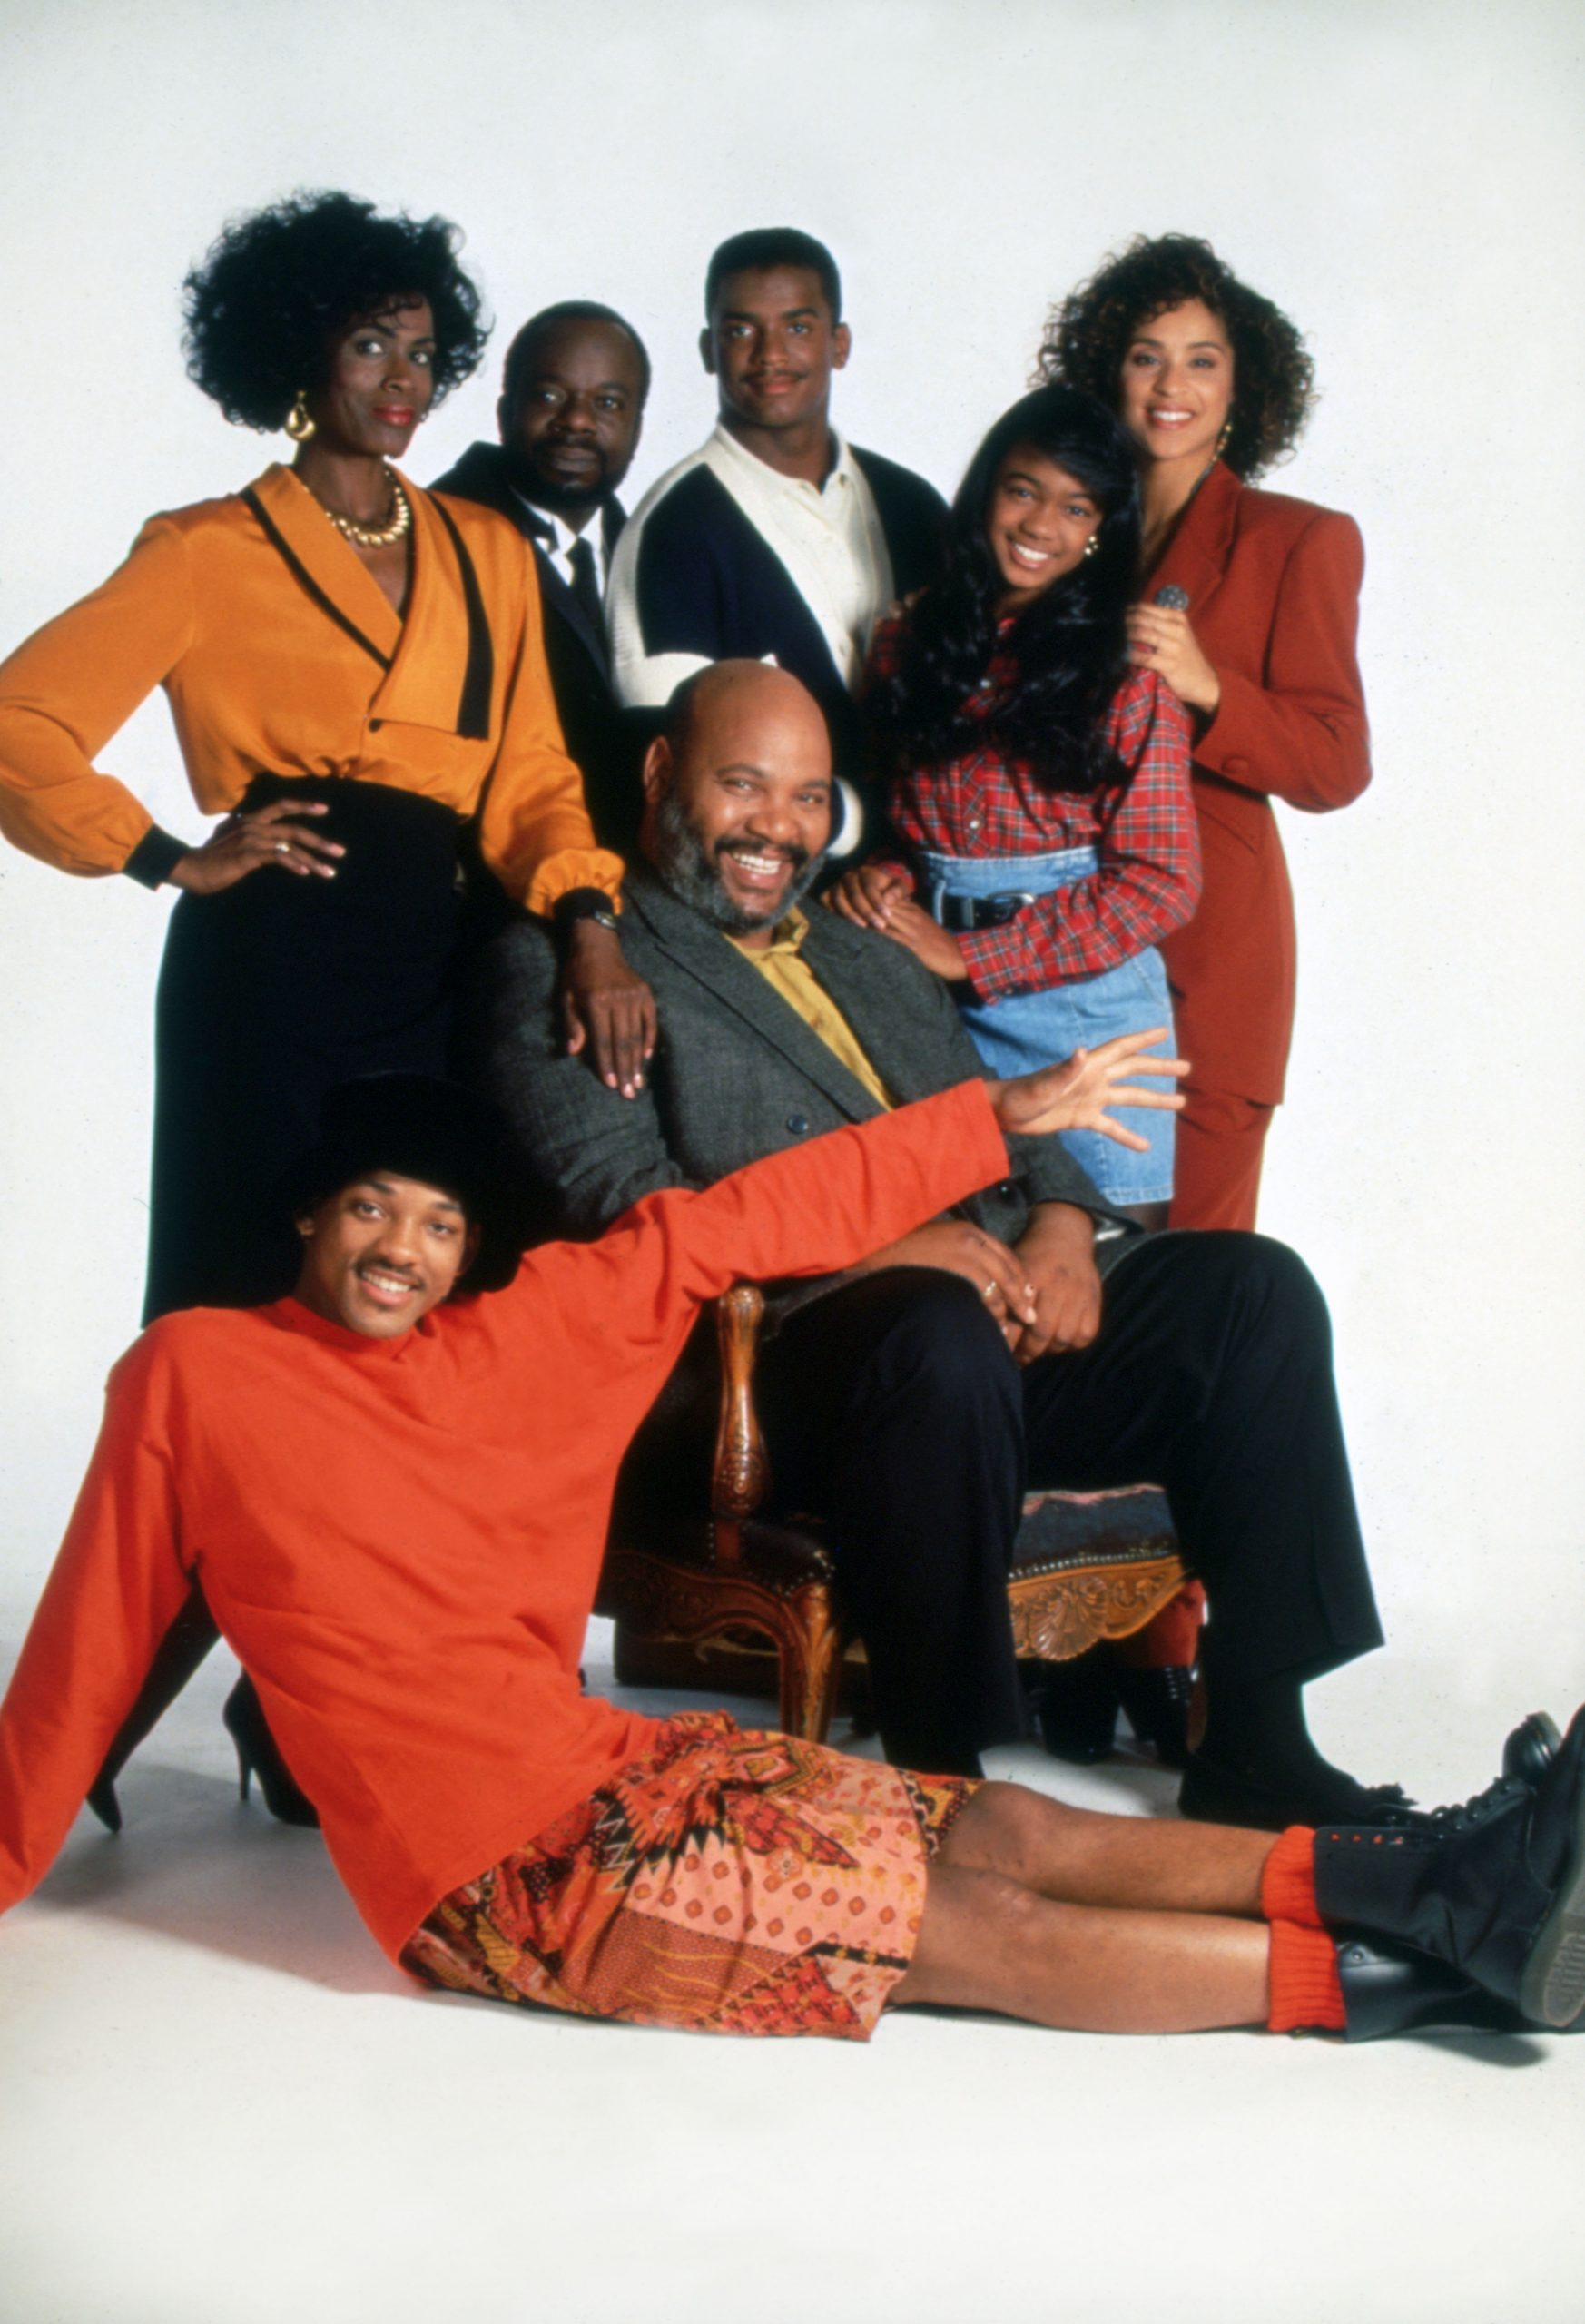 The Fresh Prince of Bel-Air Reunion review